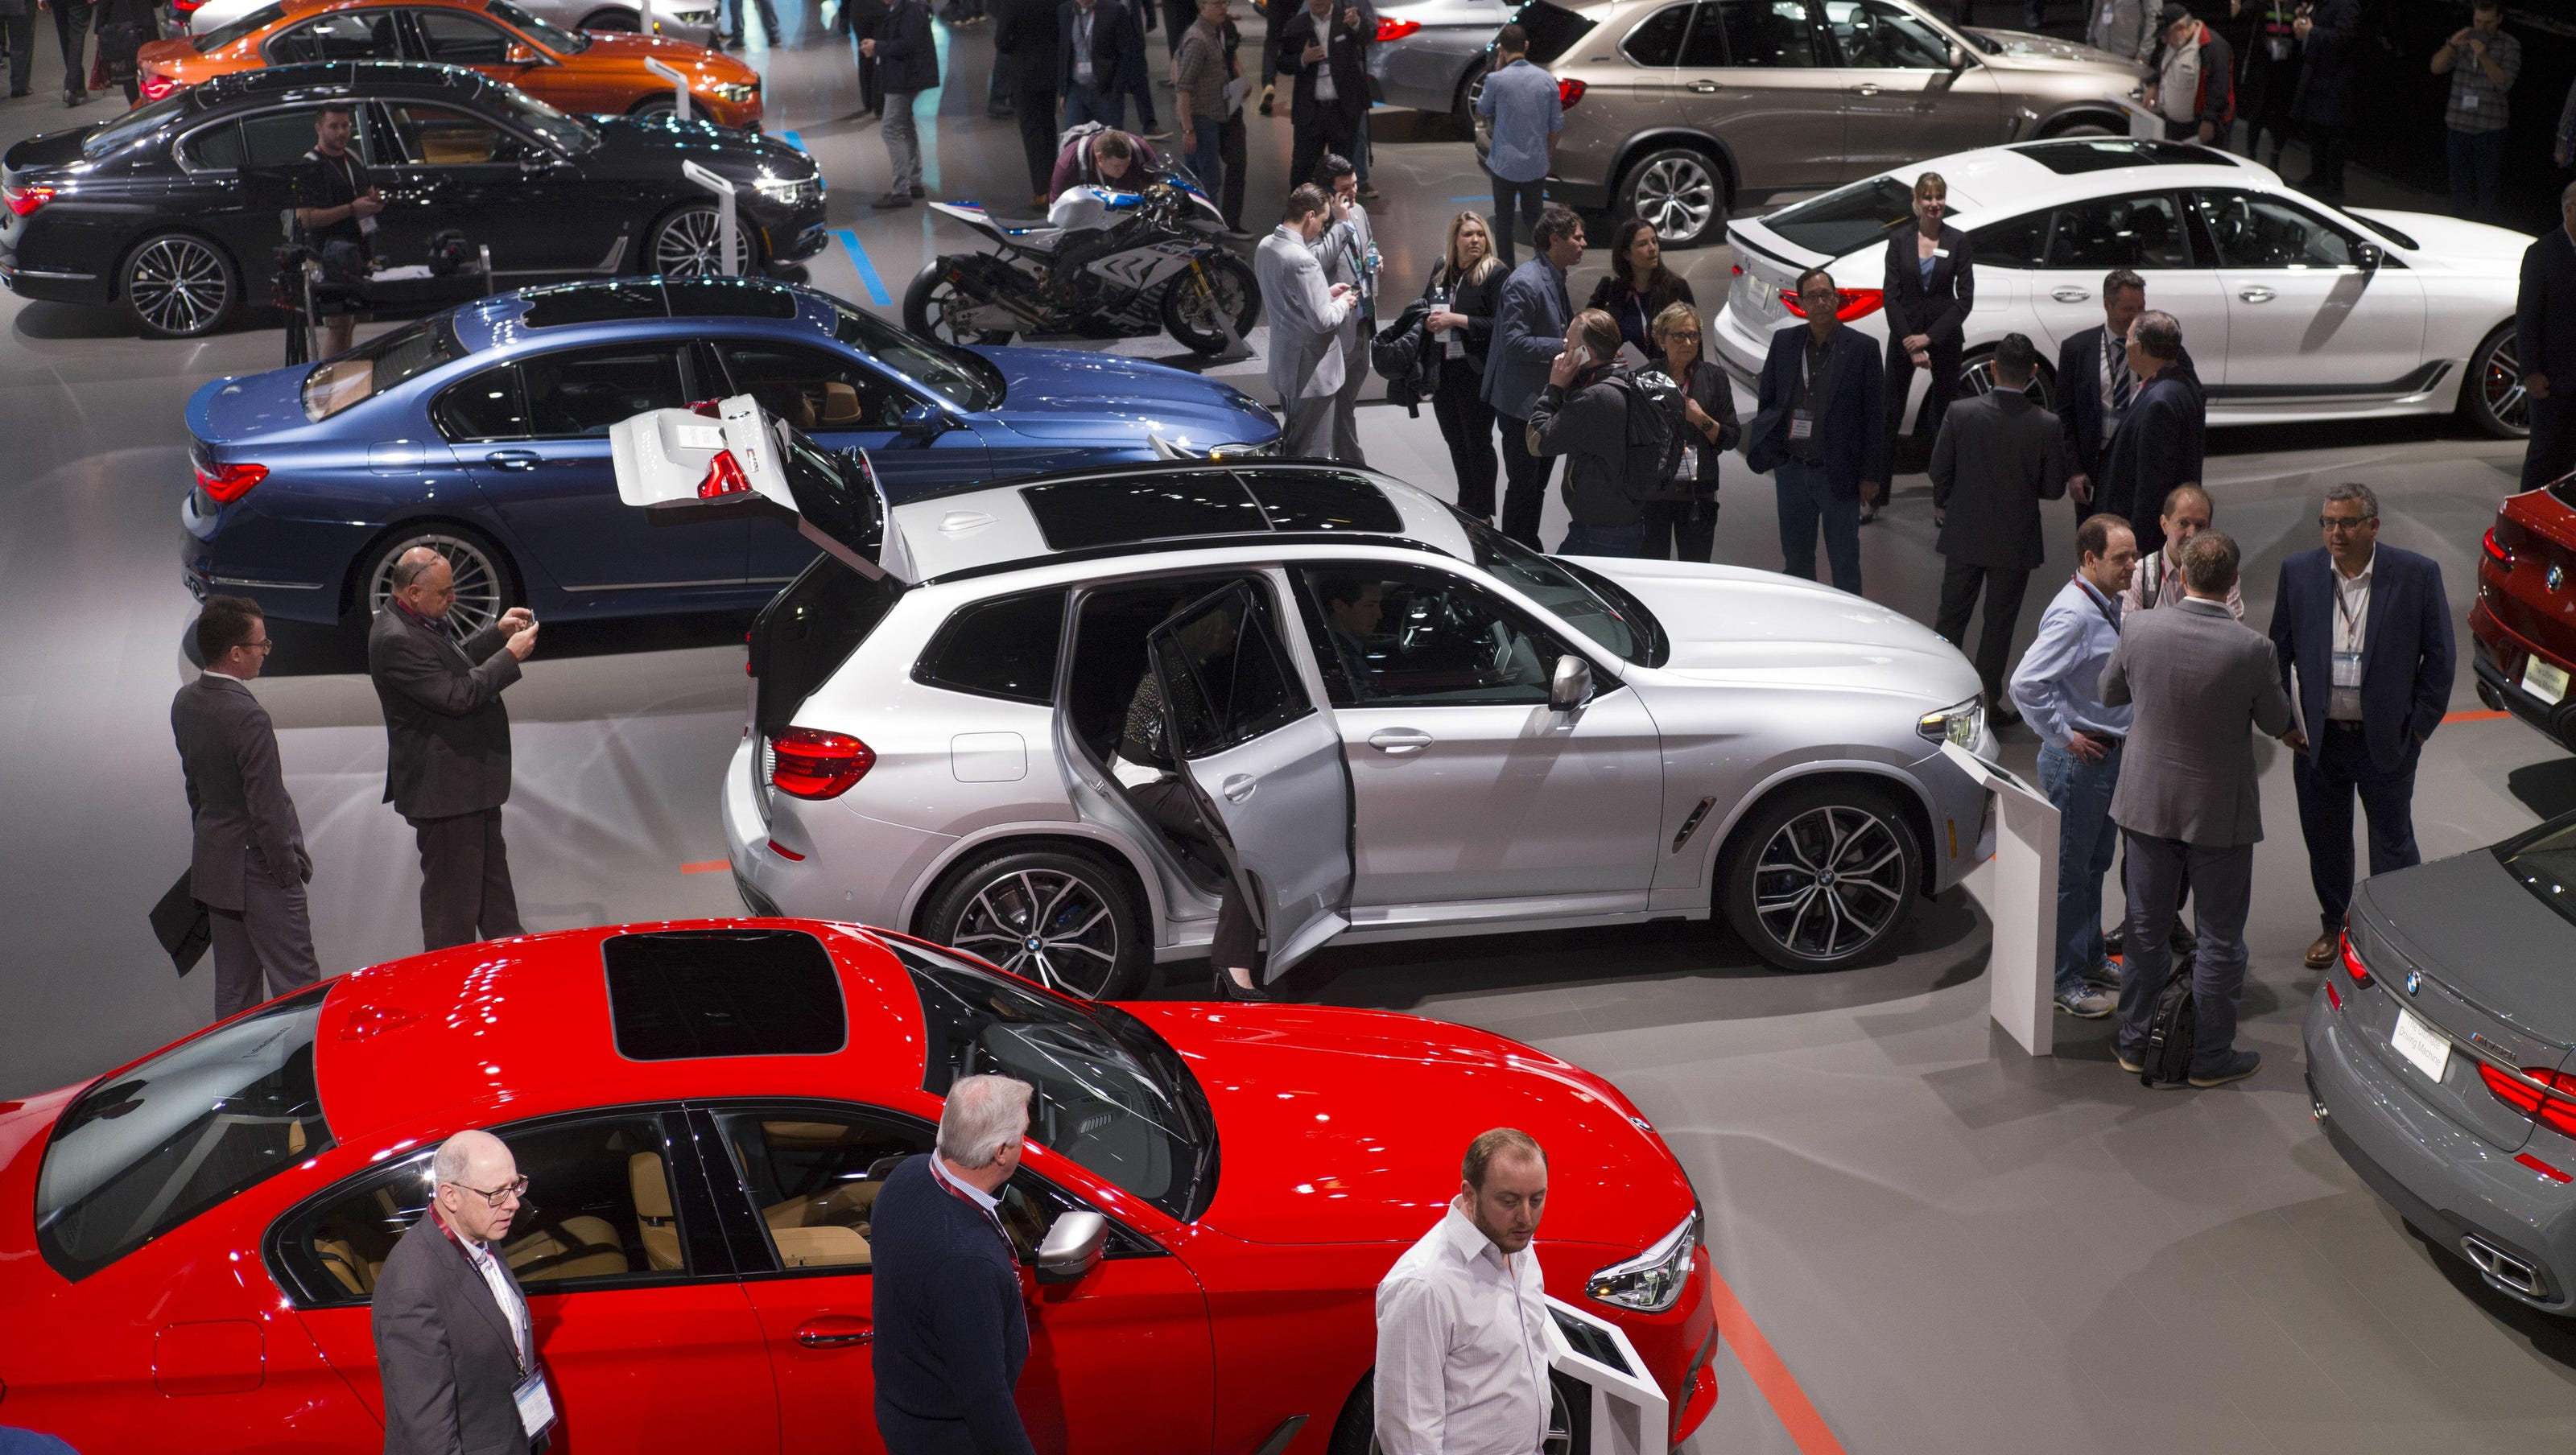 All About Cars >> Amid Tech Shakeup New York Show Is All About Cars